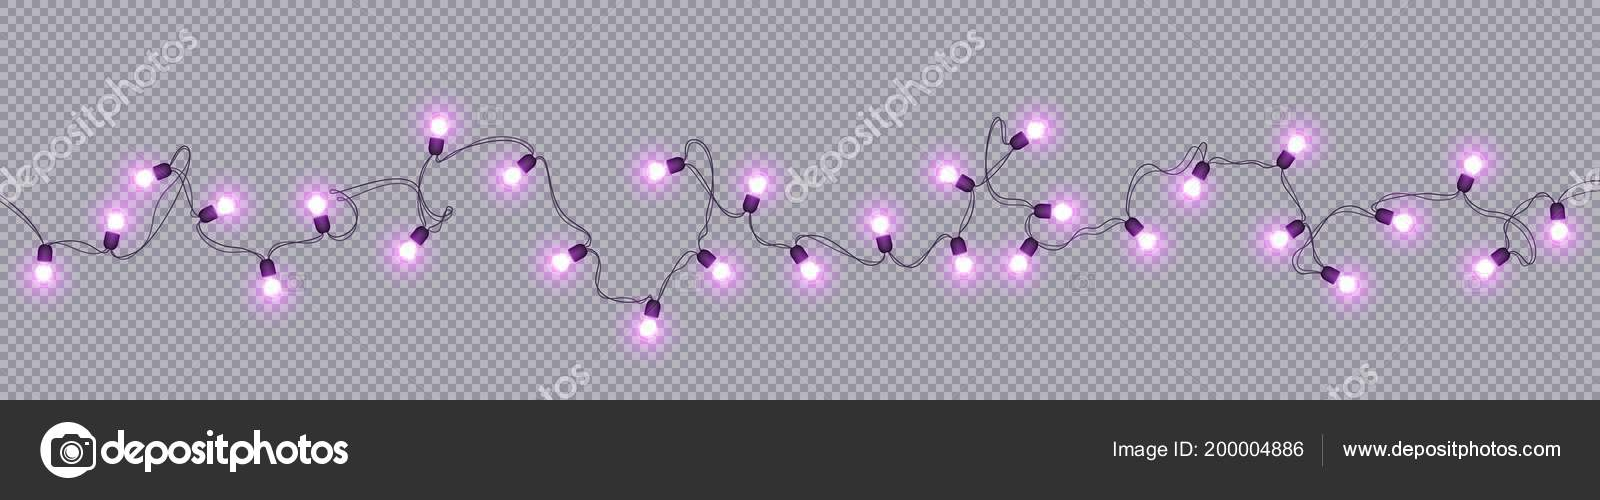 Glowing Light Bulbs Christmas And New Year Realistic Garlands Isolated On Transparent Background Xmas Decorations For Festive Design Of Postcards Banners